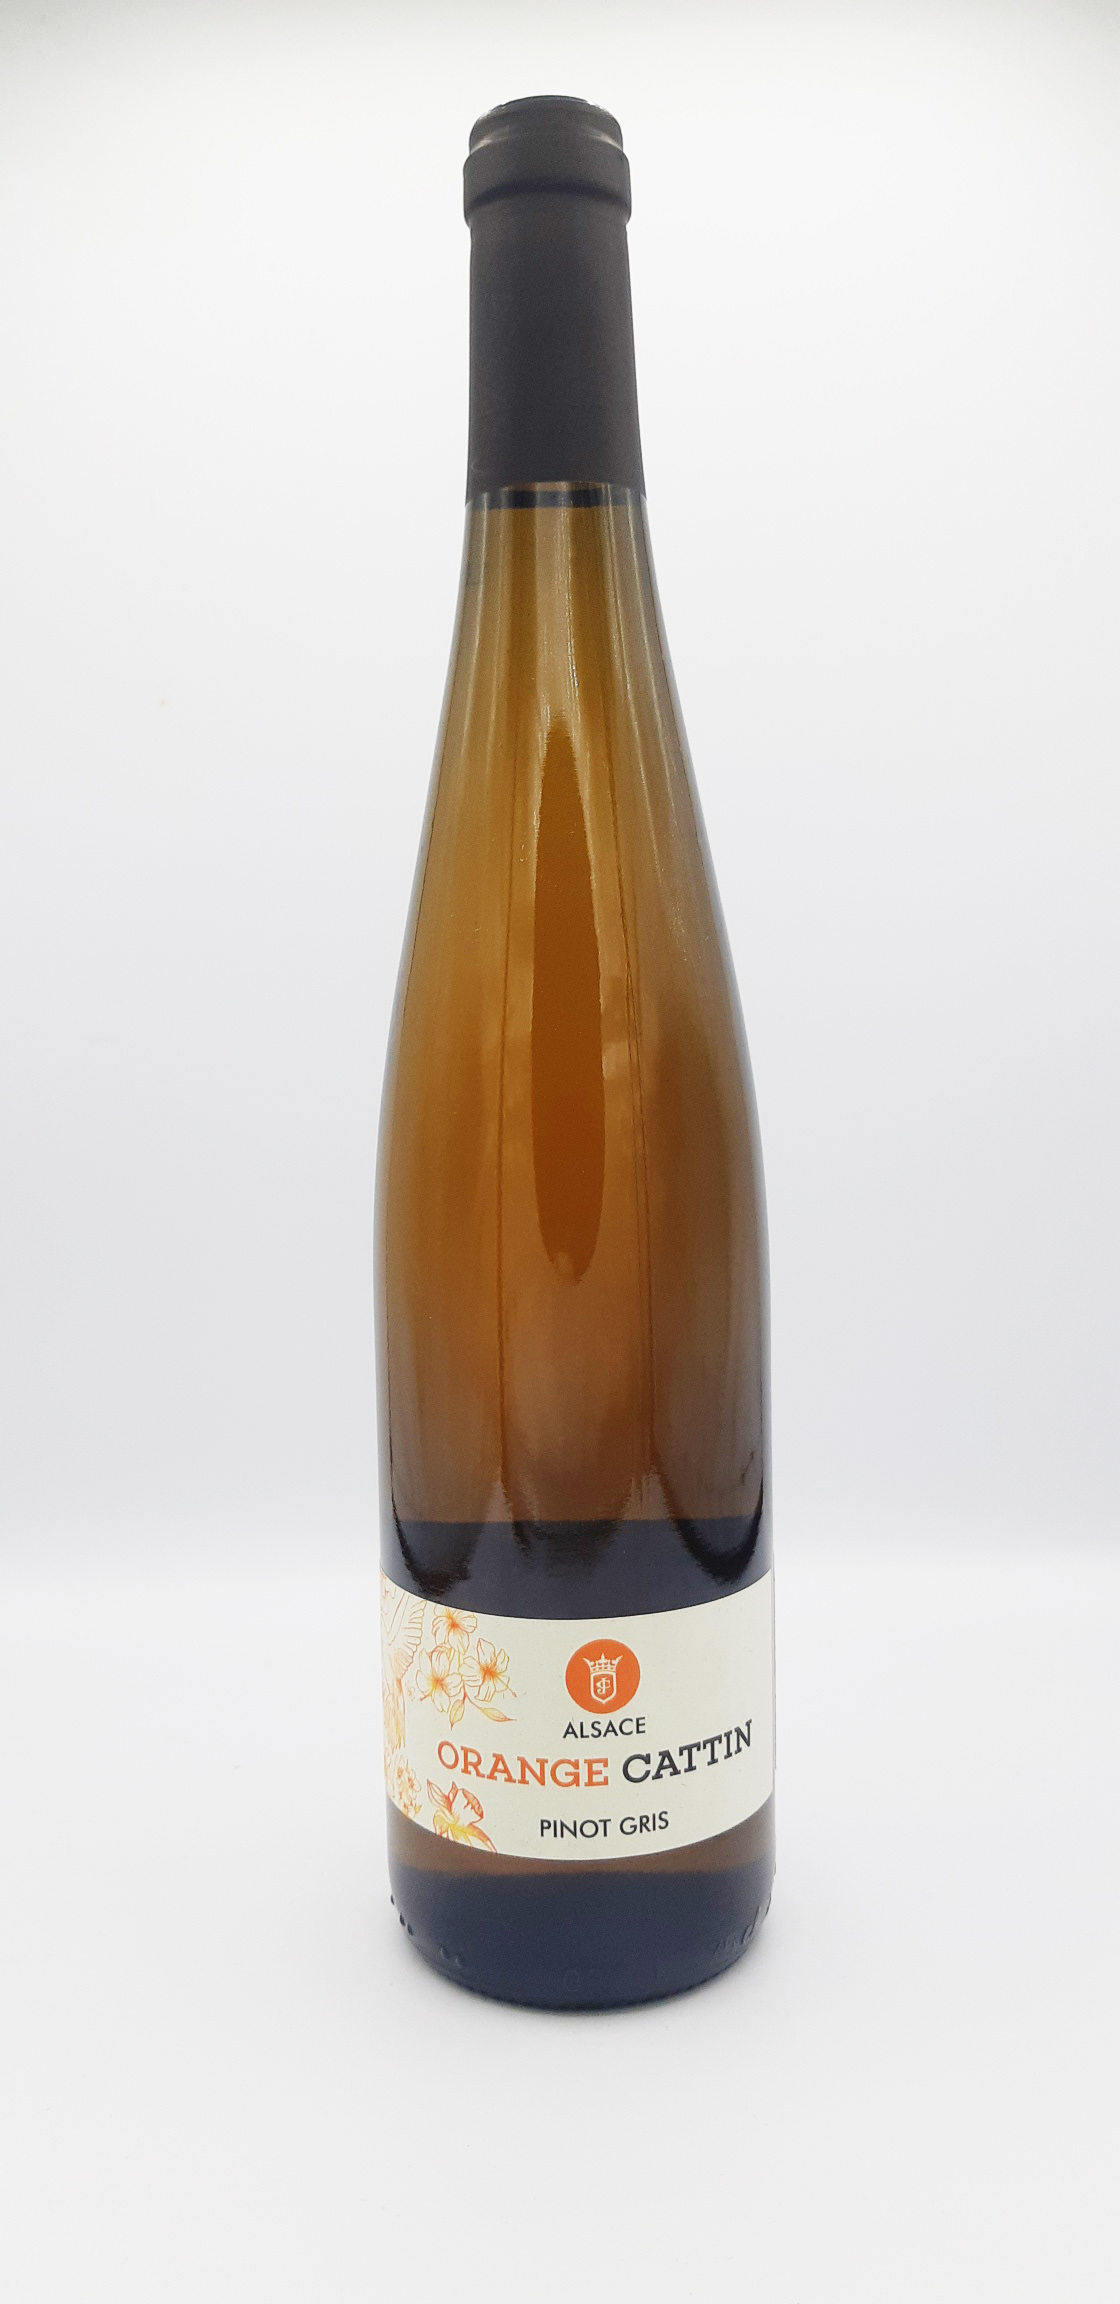 Cattin orange , PInot Gris 2020